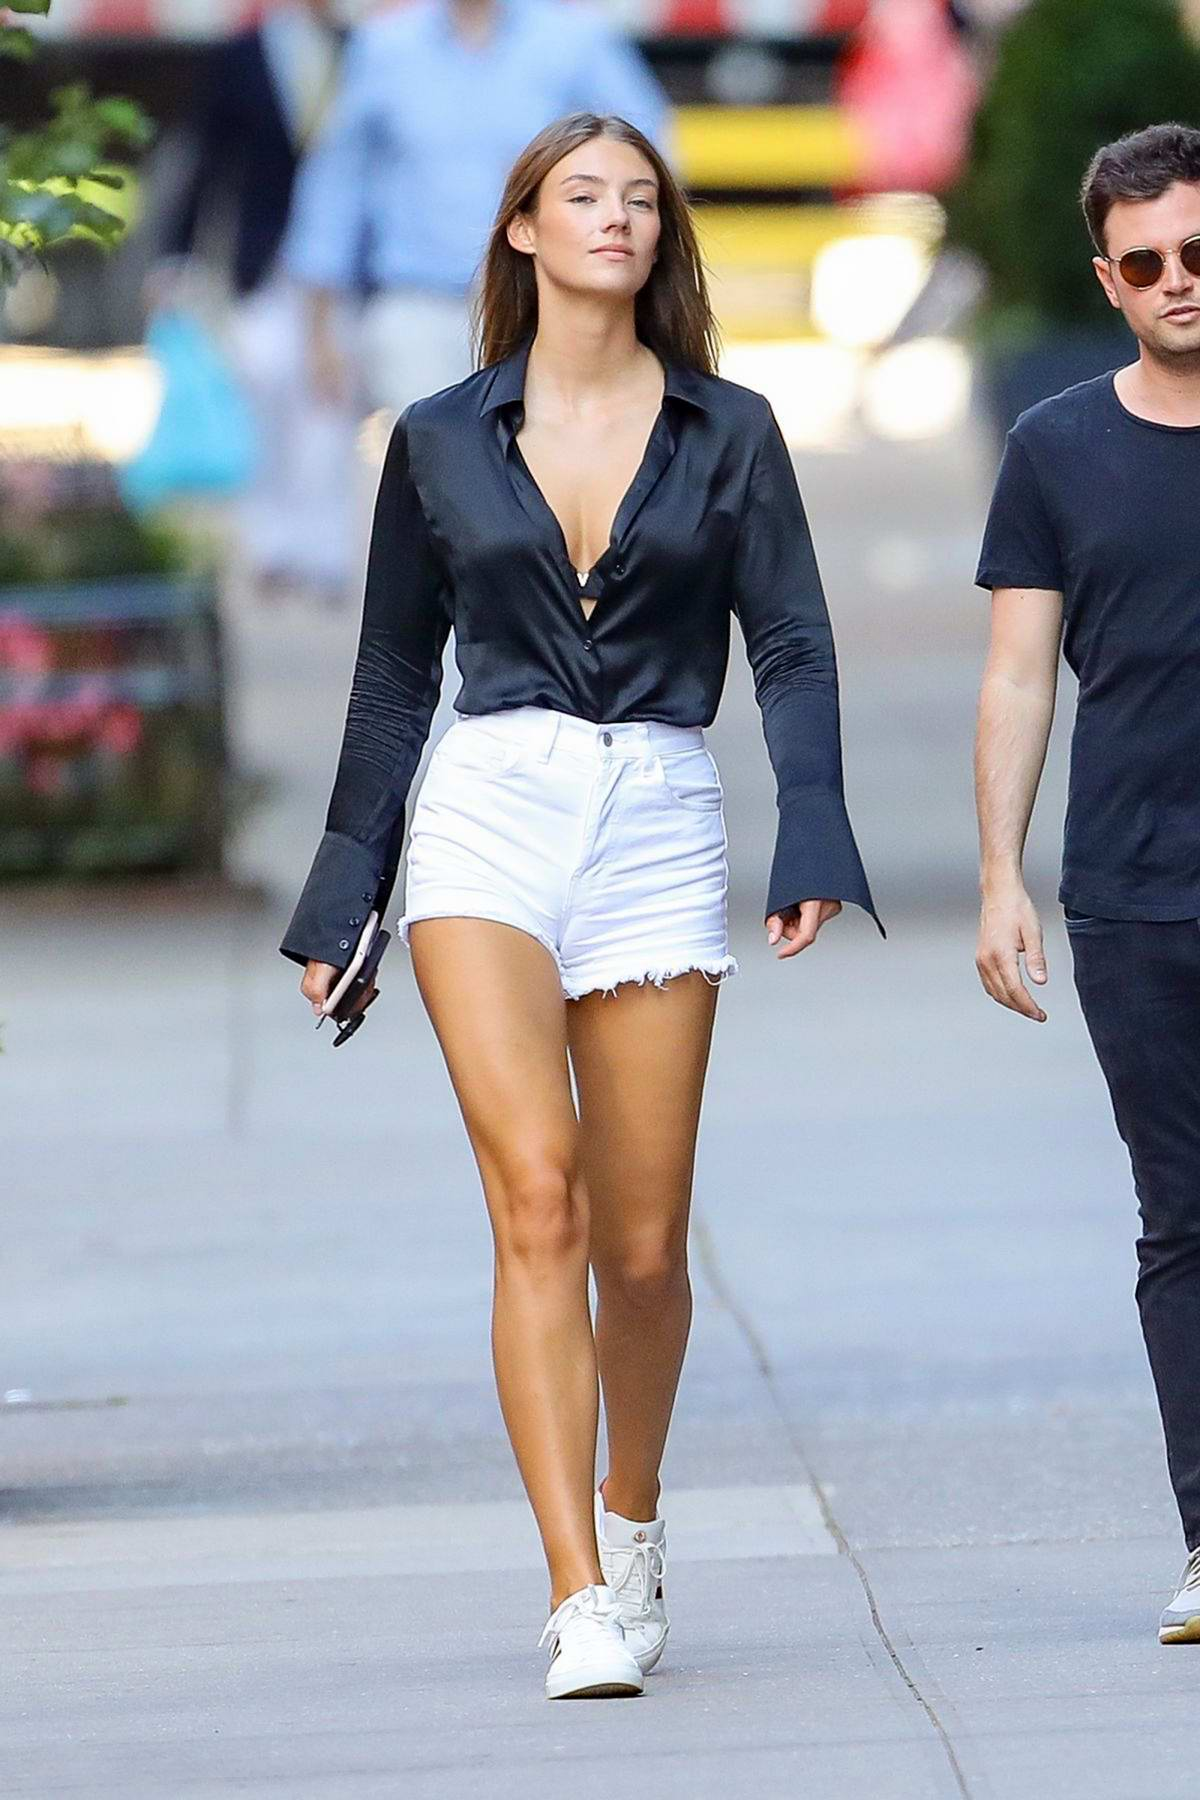 Lorena Rae keeps it stylish in a black shirt and white denim shorts as she steps out in New York City